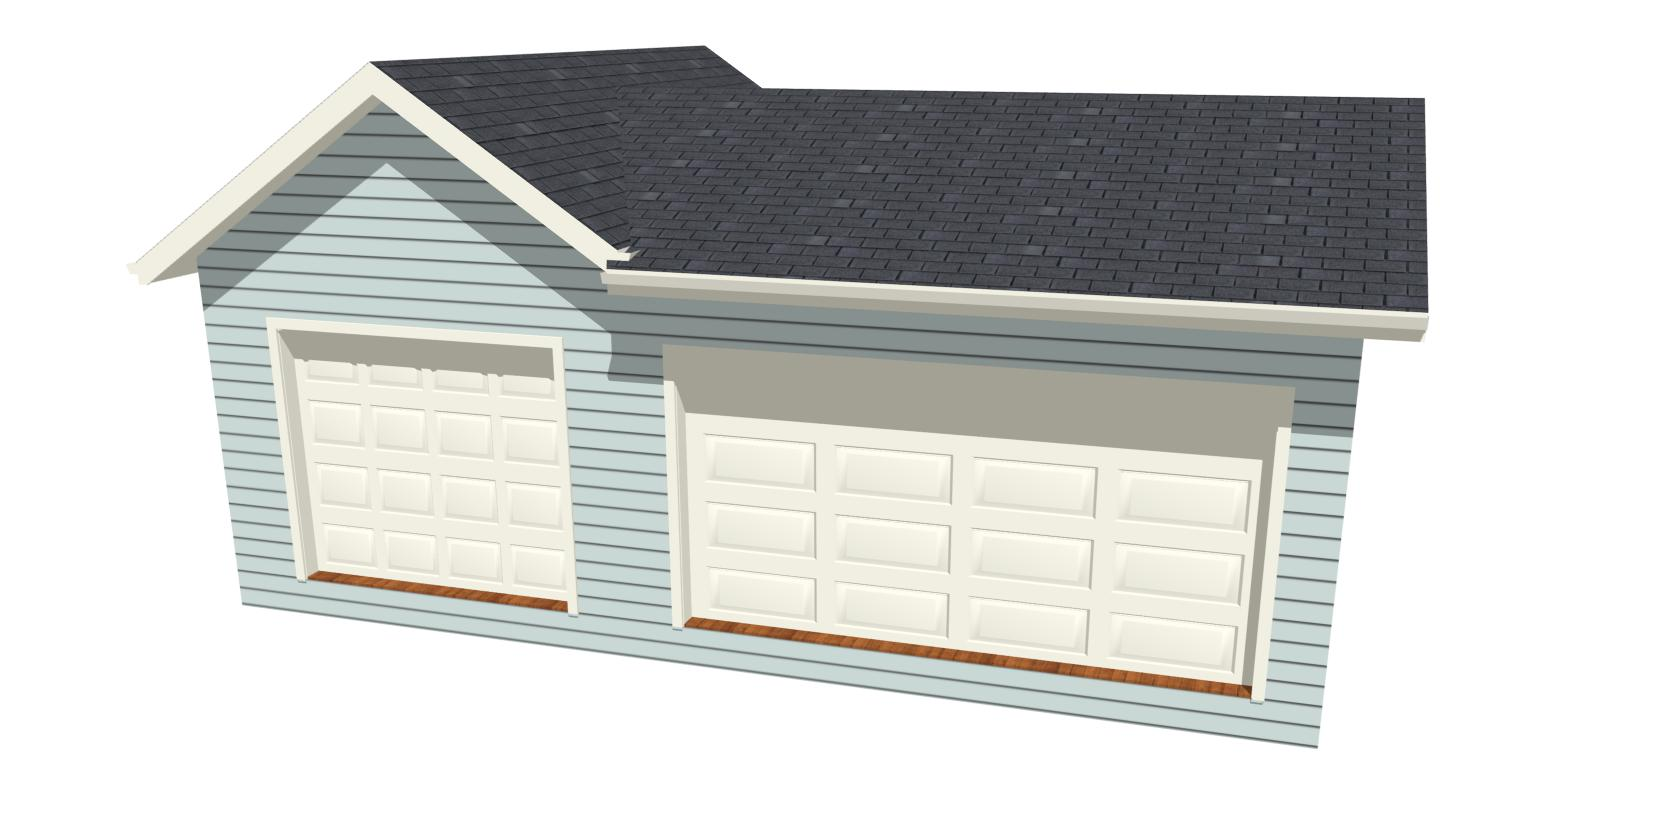 Carport Lean to Roof Question..-garage.jpg